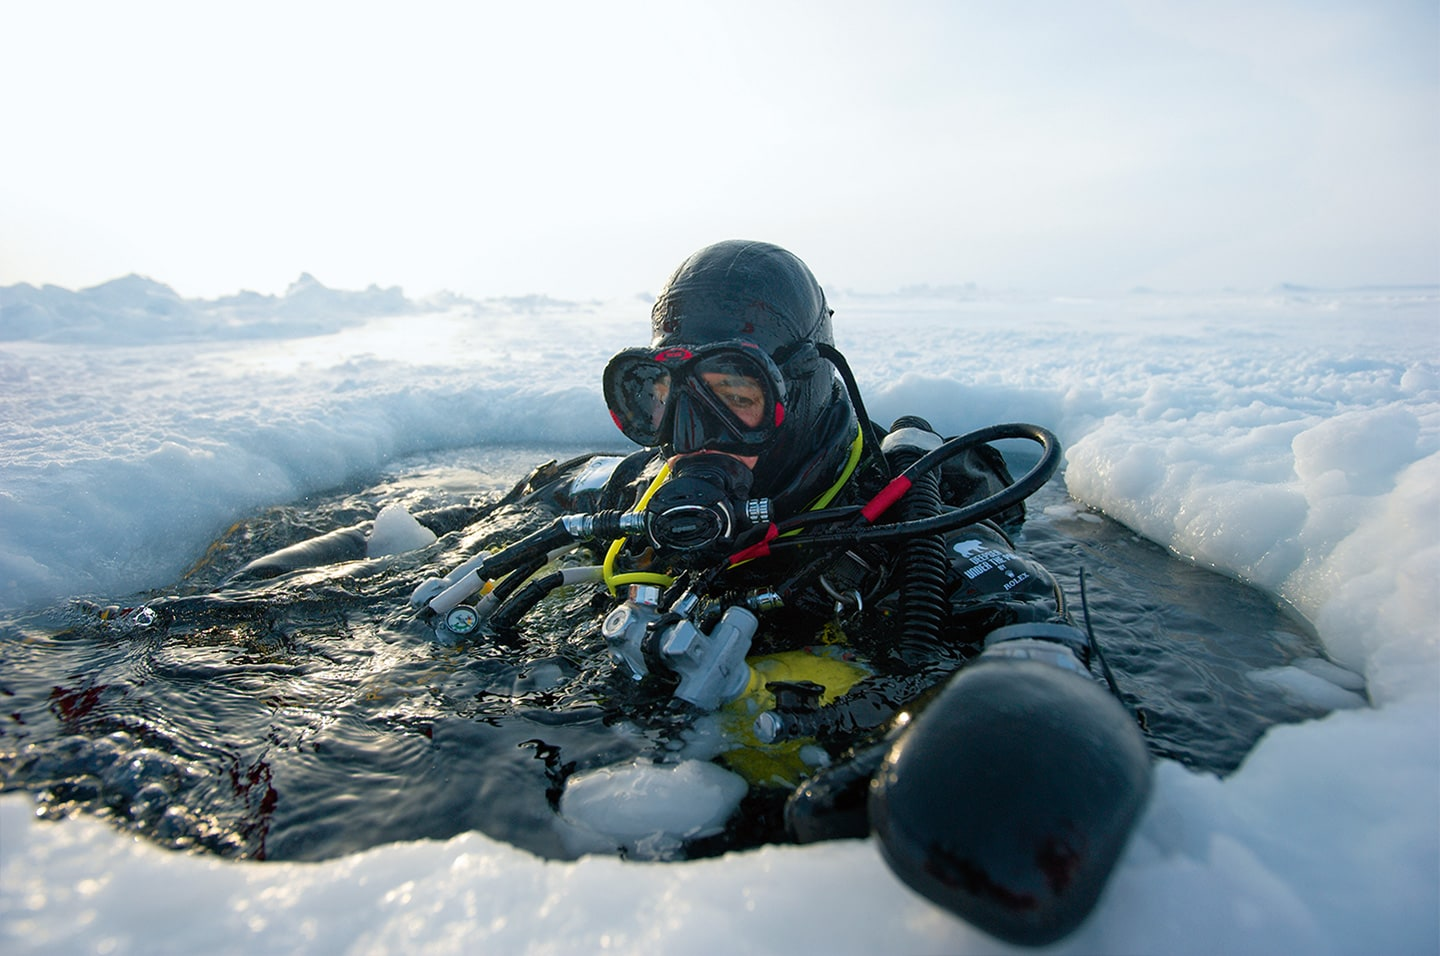 One year-old Kayak rapidly became known as the ninth member of the team. While his official assignment was to warn for polar bears, he soon became indispensable on an emotional level as well. Team member Emmanuelle Périé developed a special bond with him and became his primary care-taker for the duration of the expedition.